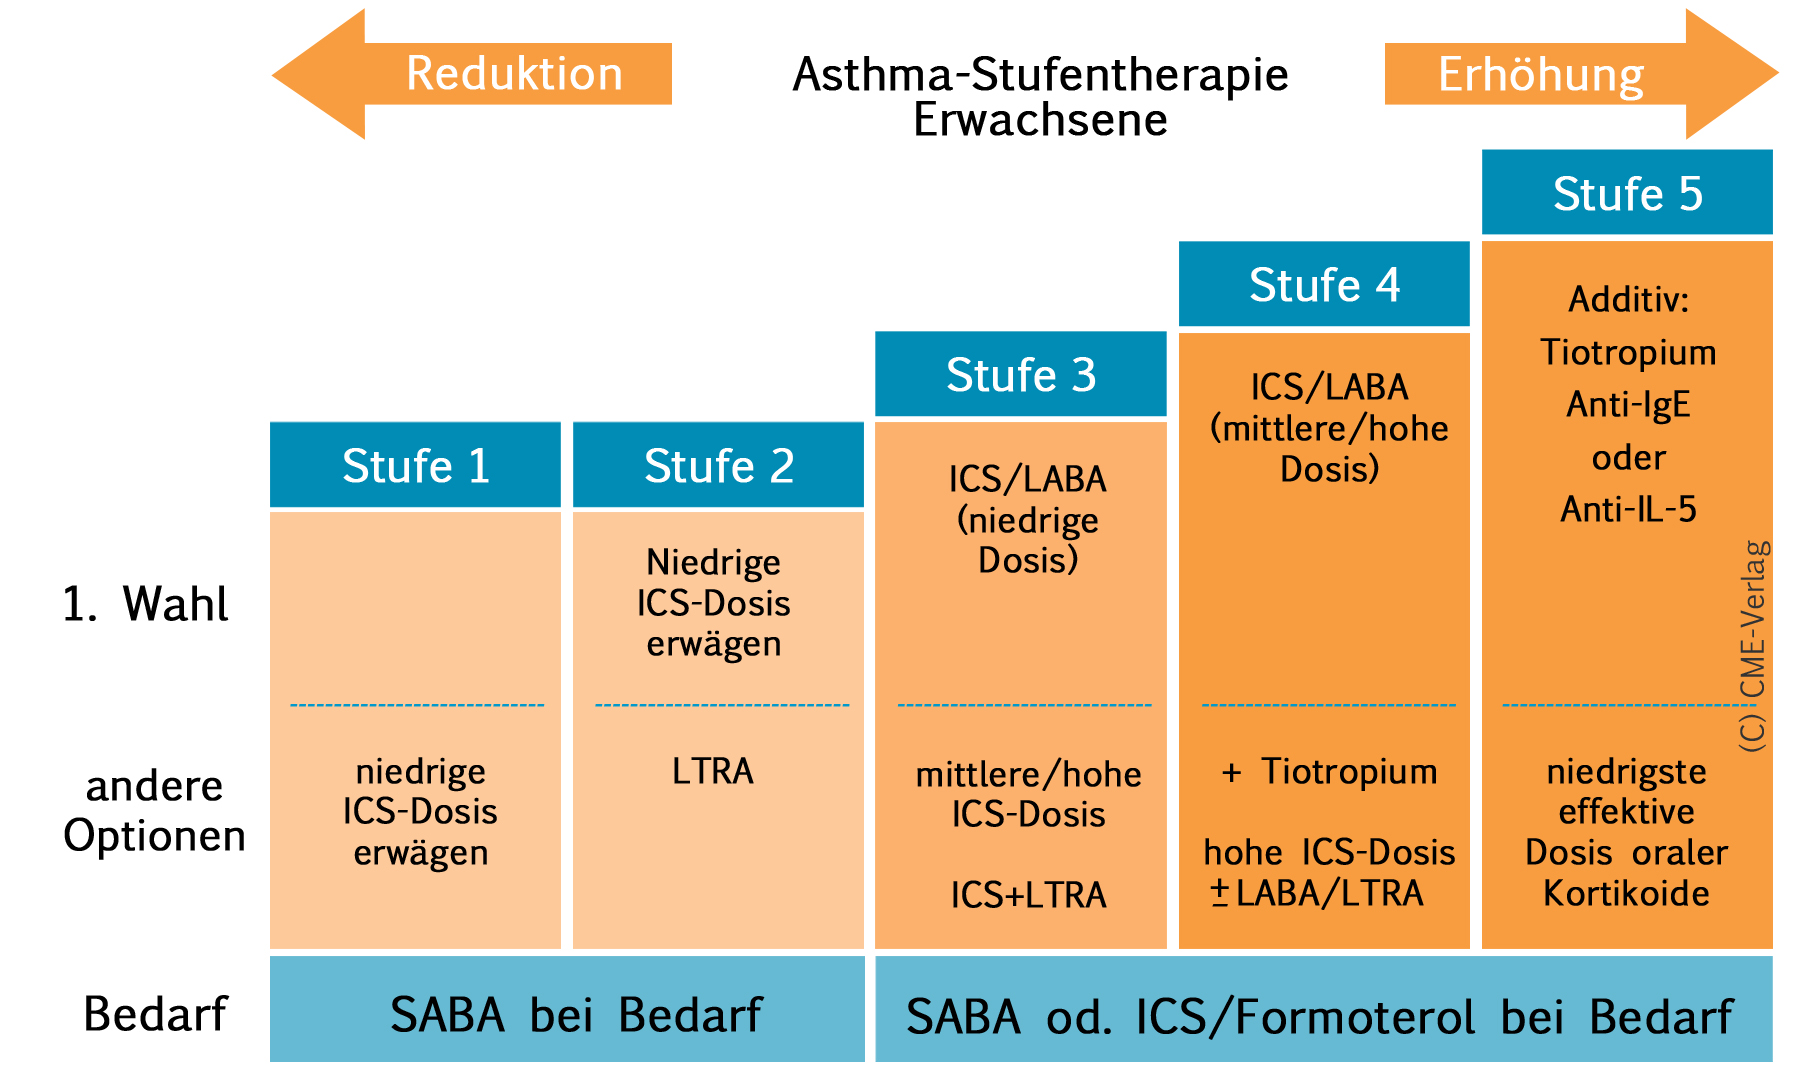 Asthma-Stufenschema